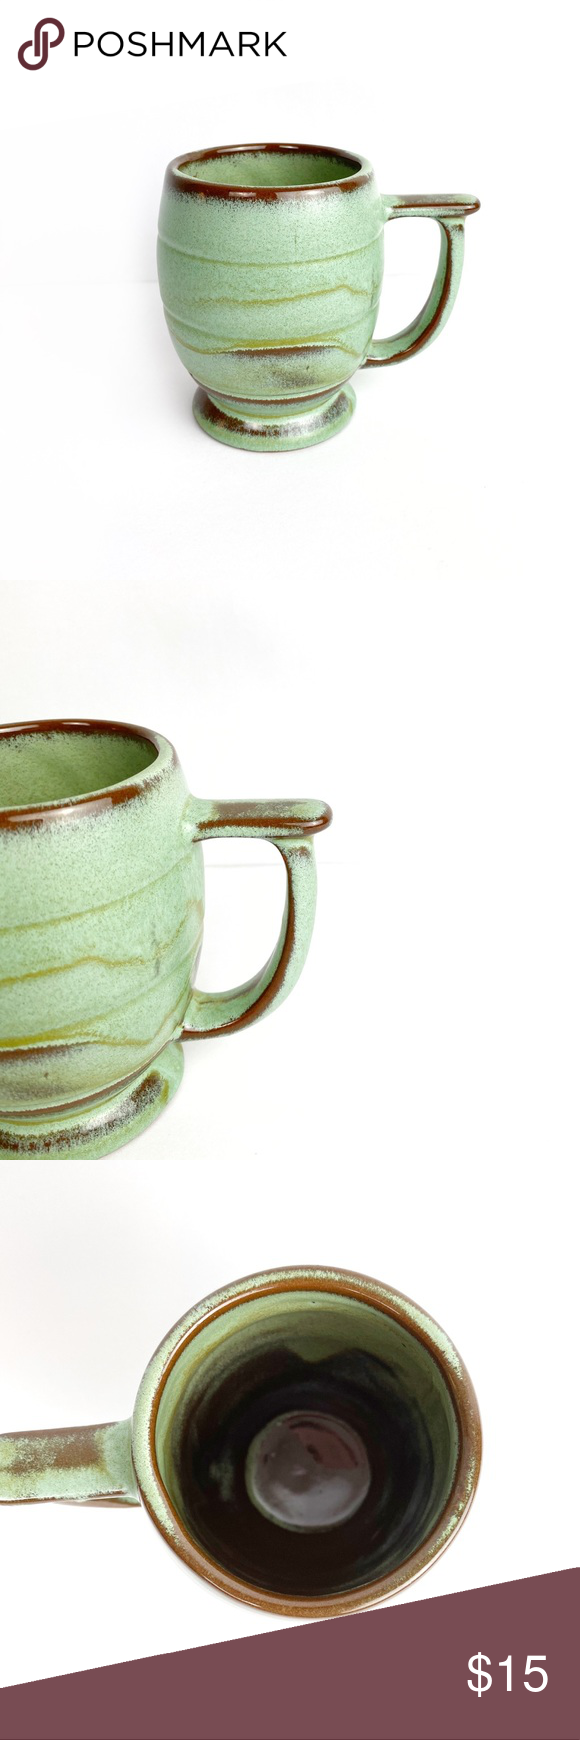 Frankoma Pottery Handled Praire Green Mug C7 This mug is a part of the Frankoma pottery collection in praire green.   Good pre owned condition. Smoke free home. There are some flaws on one side of the mug - appear to be manufacturing flaws. See last image.   See image for measurement.   0526 Frankoma Kitchen Coffee & Tea Accessories